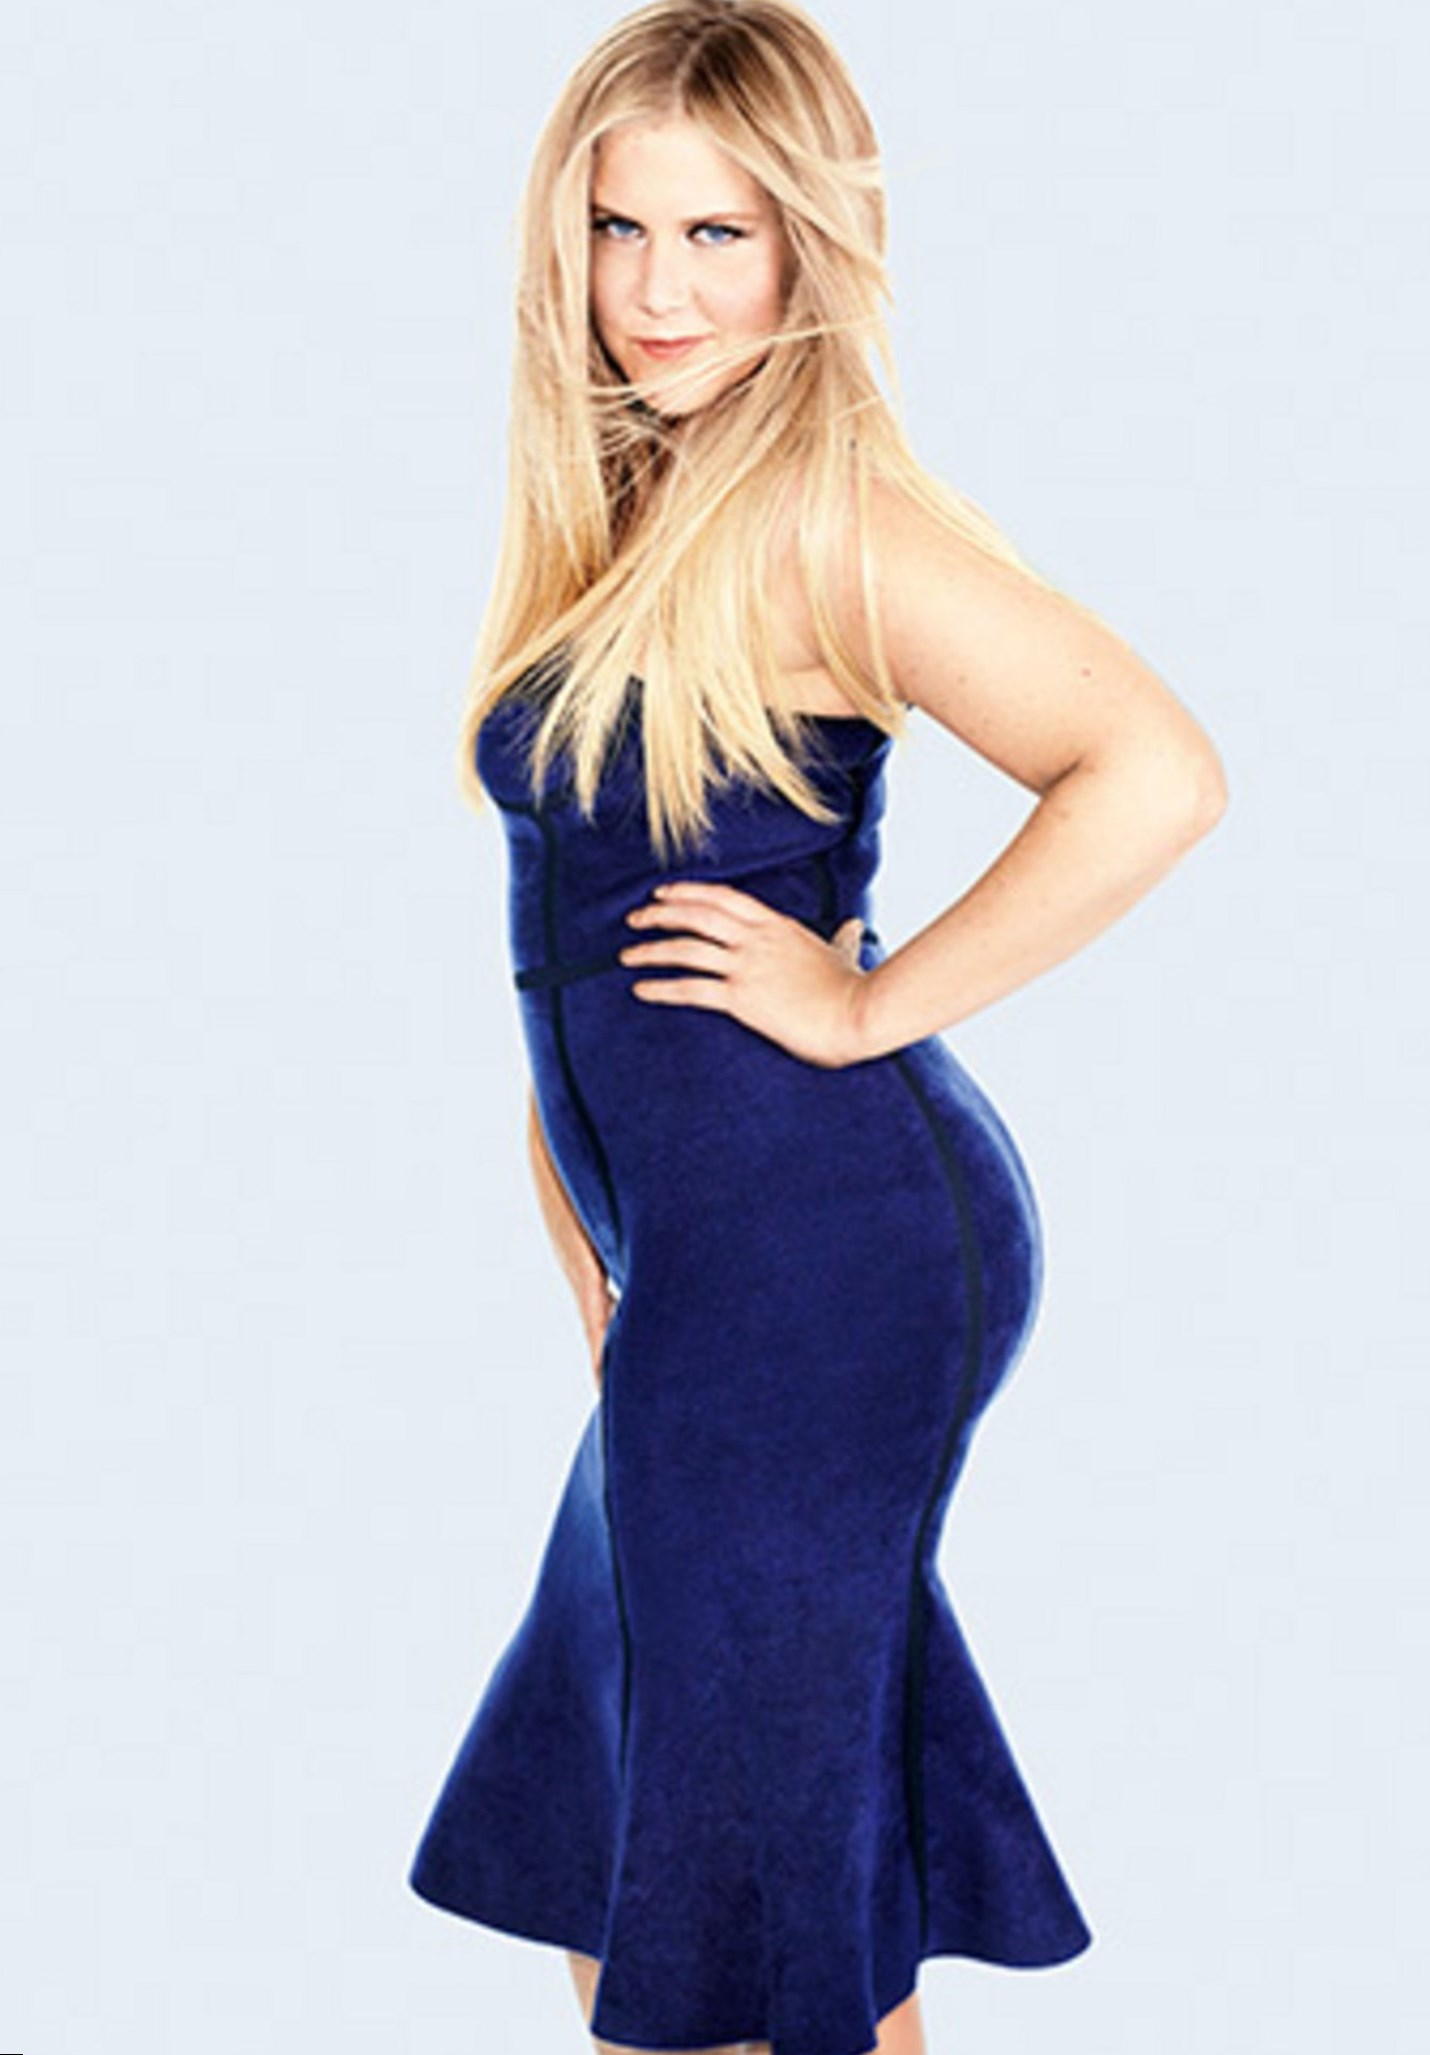 Amy Schumer Height, Weight, Measurements, Bra Size, Age ...